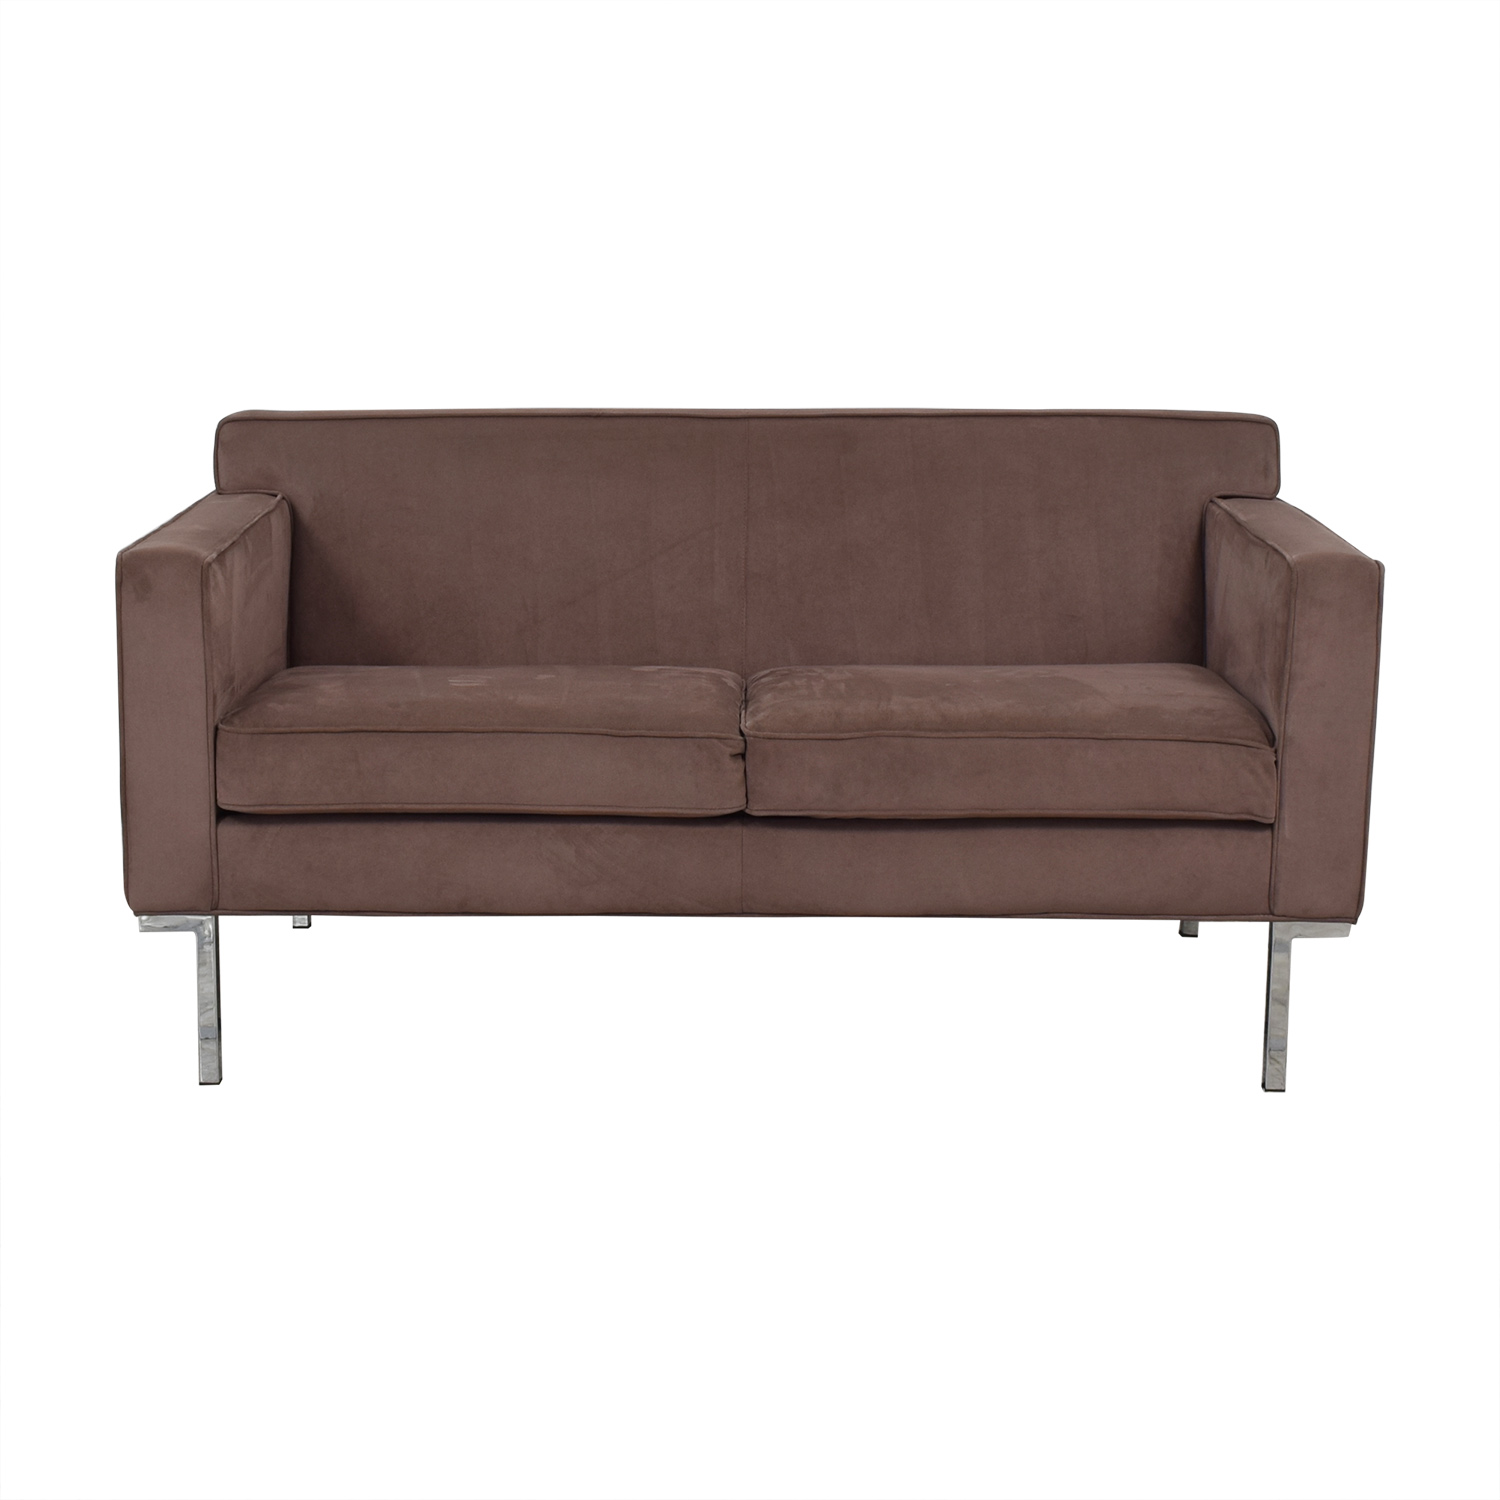 Design Within Reach Theatre Suede Two-Seater Sofa Design Within Reach